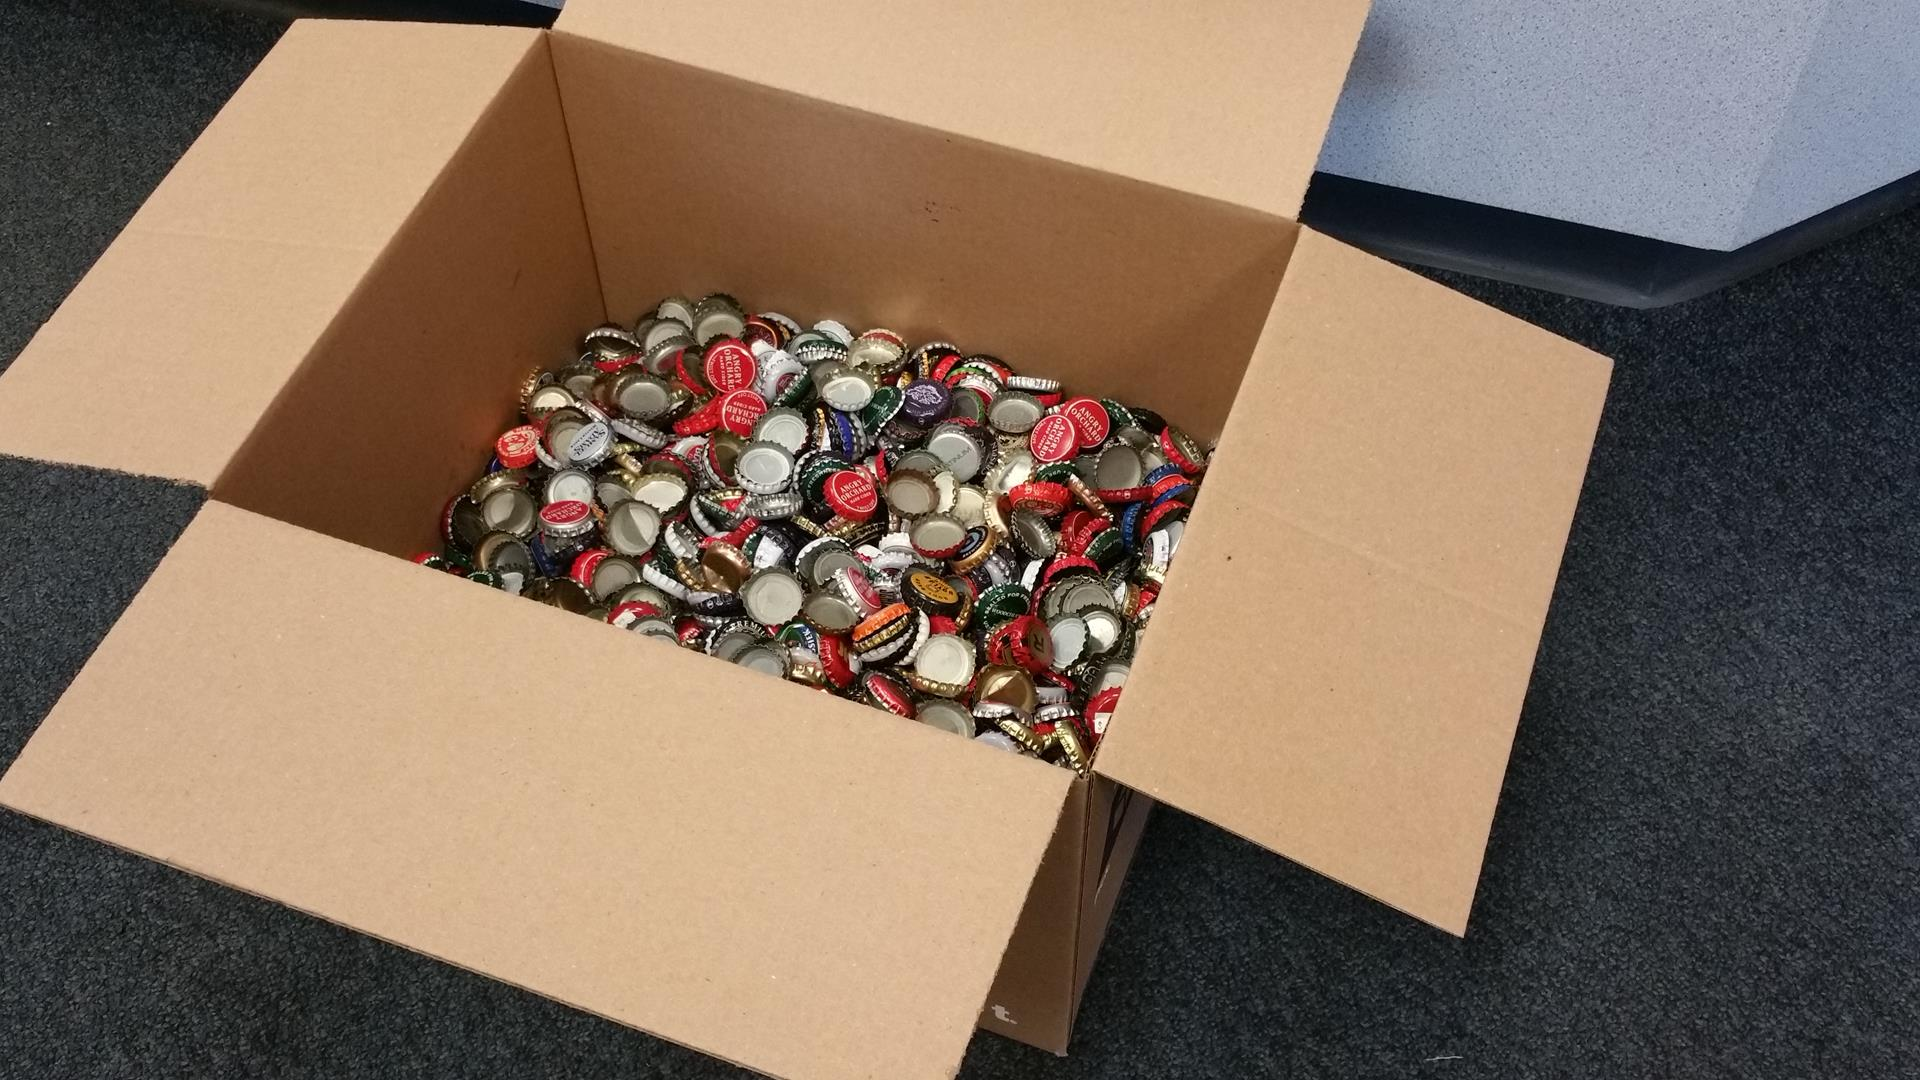 Bethesda bottle caps